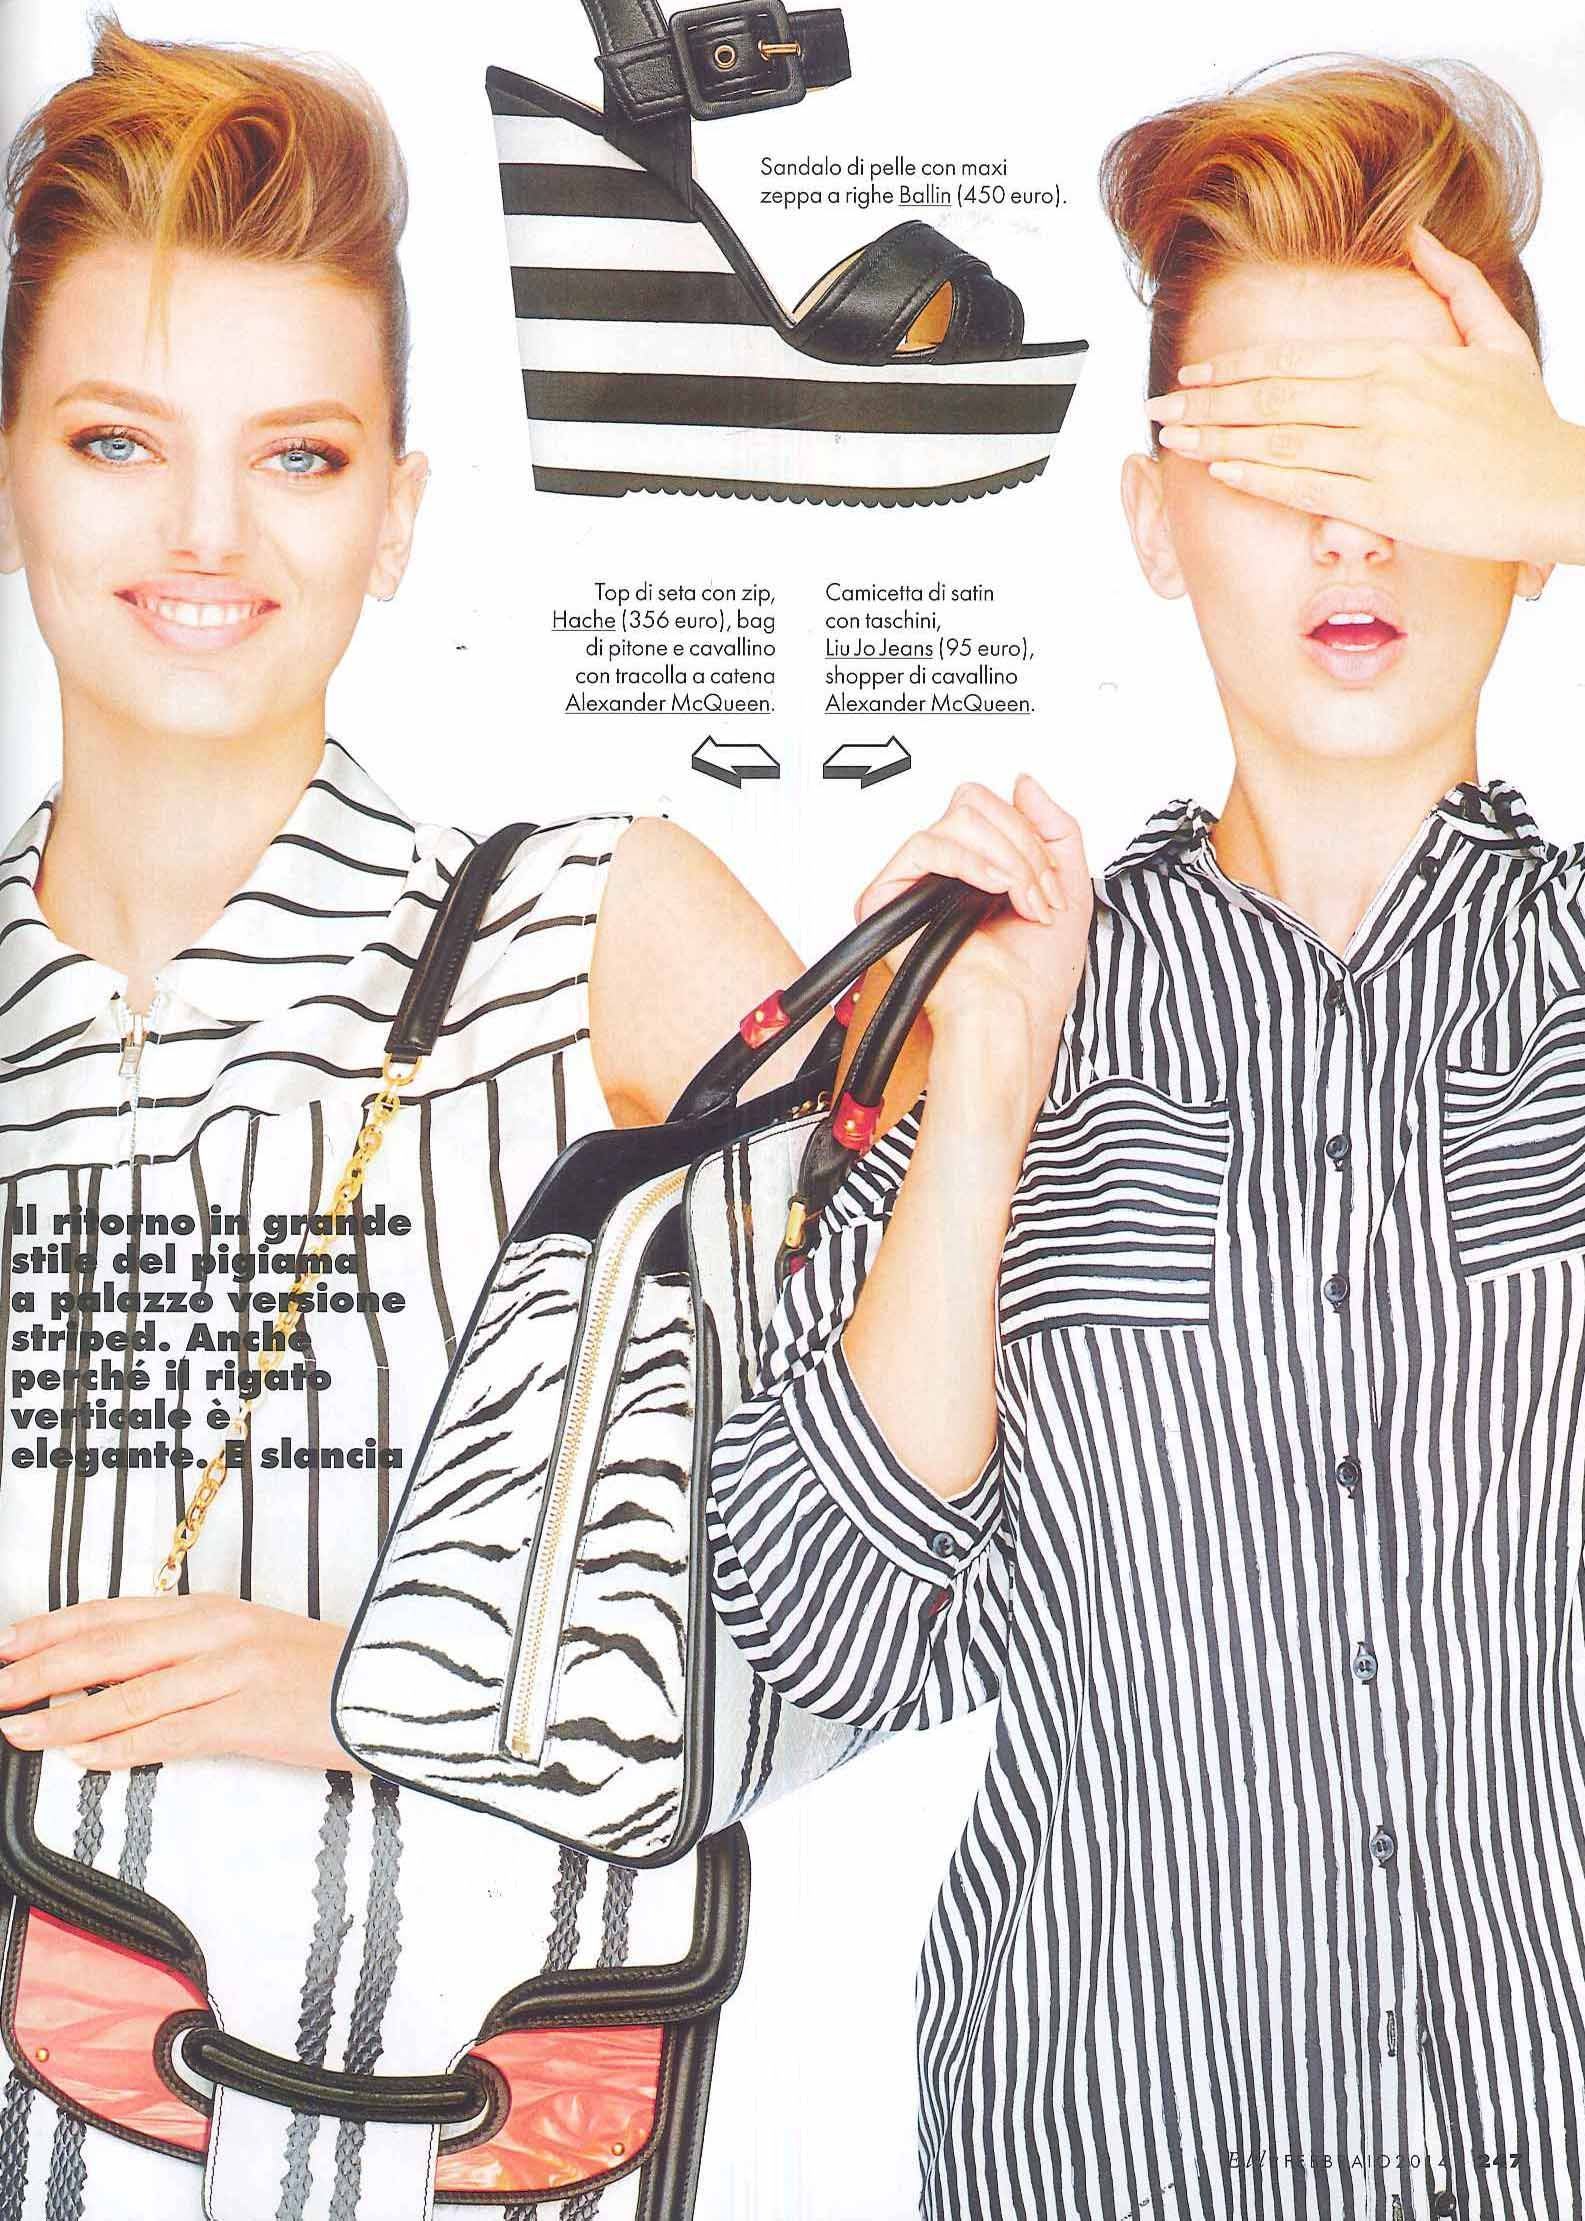 STRIPED -  Elle, Feb 2014. Leather sandal with striped wedge. Soon available on http://shop.ballin-shoes.it/